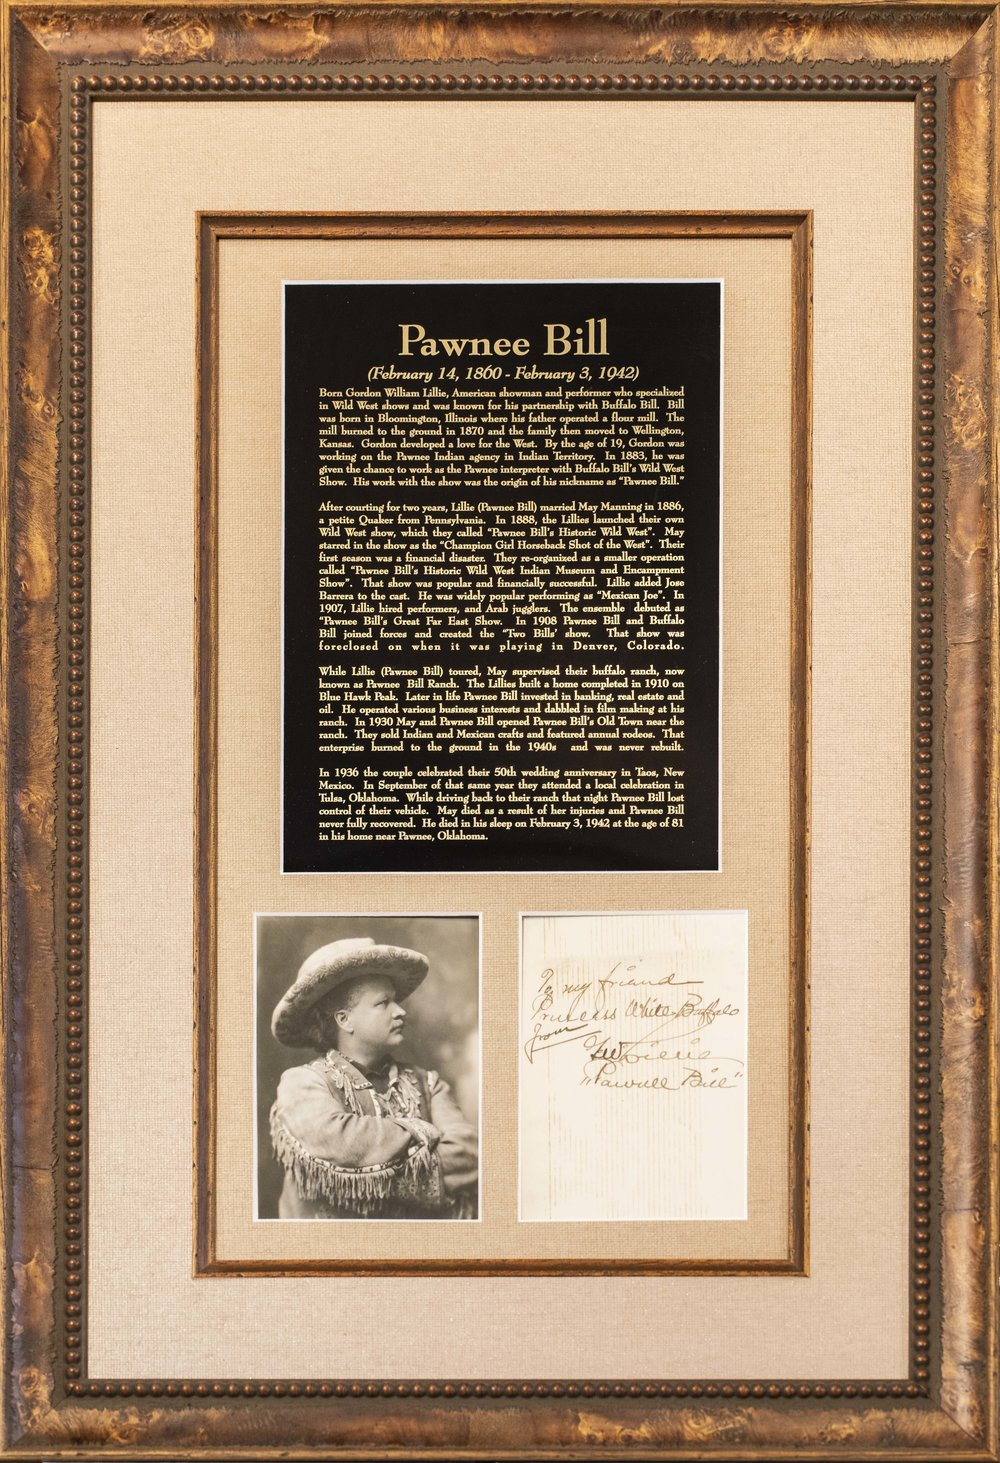 Pawnee Bill with a custom engraved  black and gold metal plaque